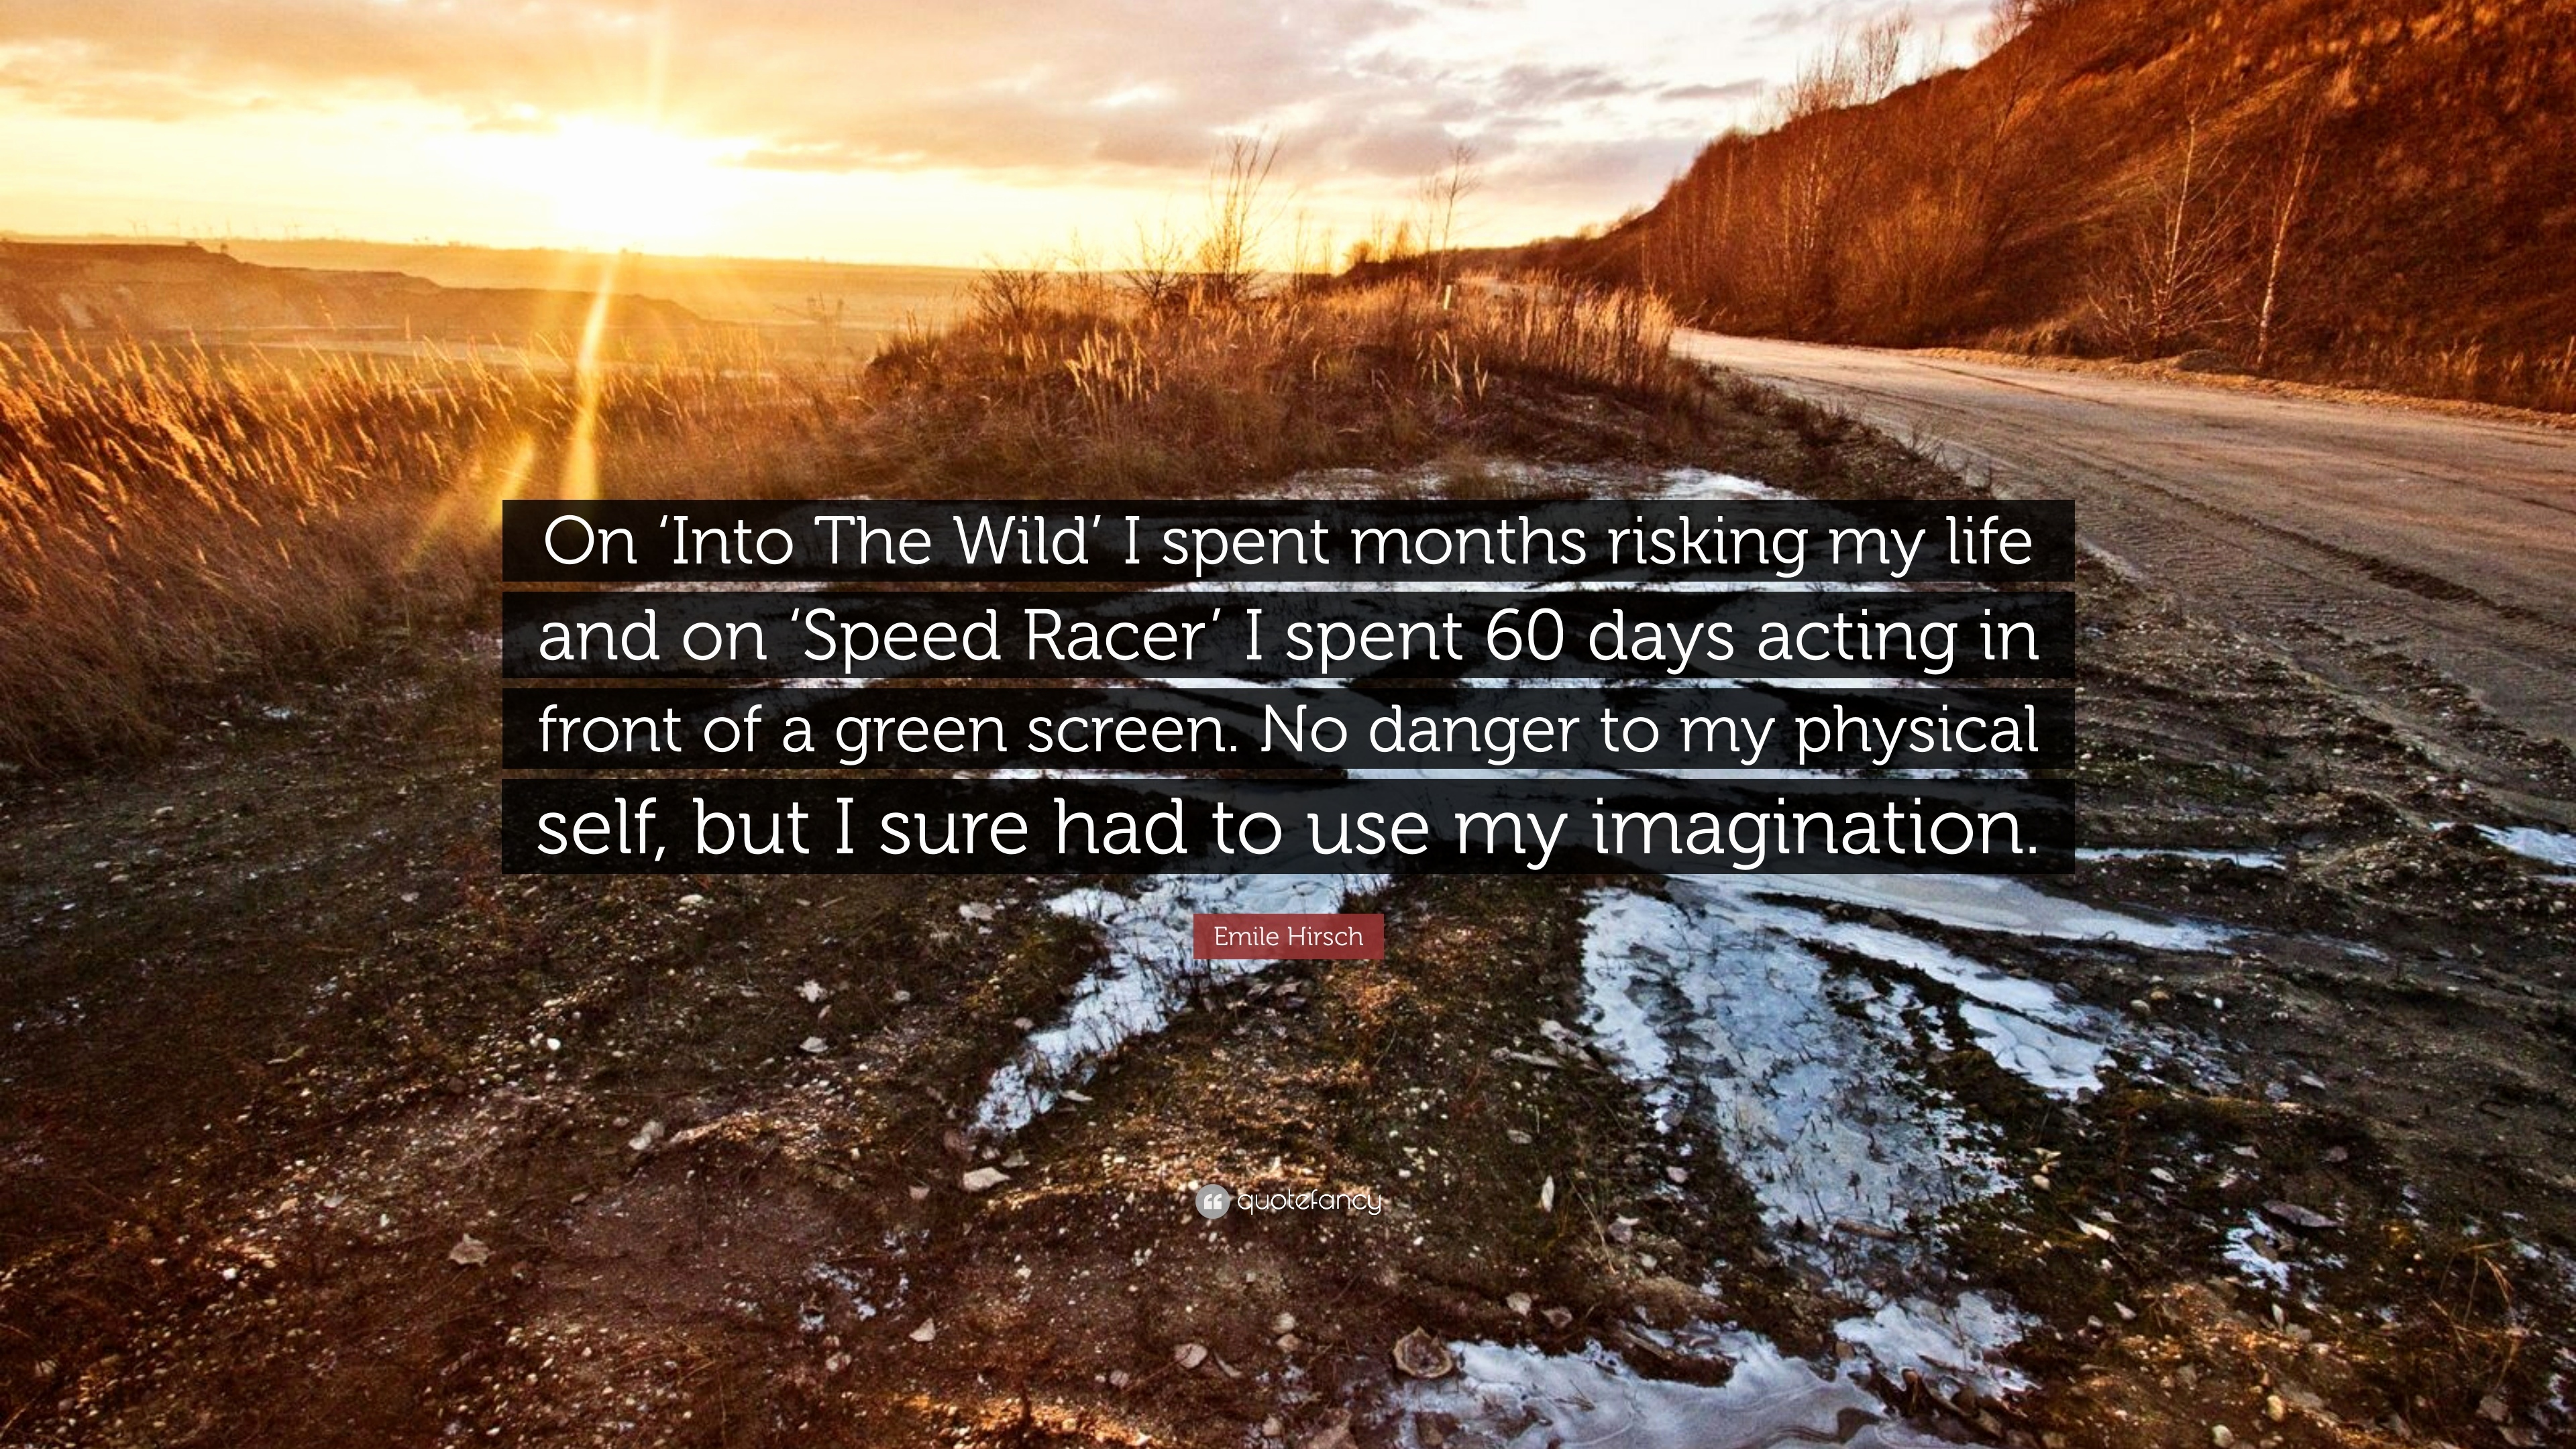 Lord Of the Flies Quotes Best Of Into the Wild Quotes Quotes Of the ...